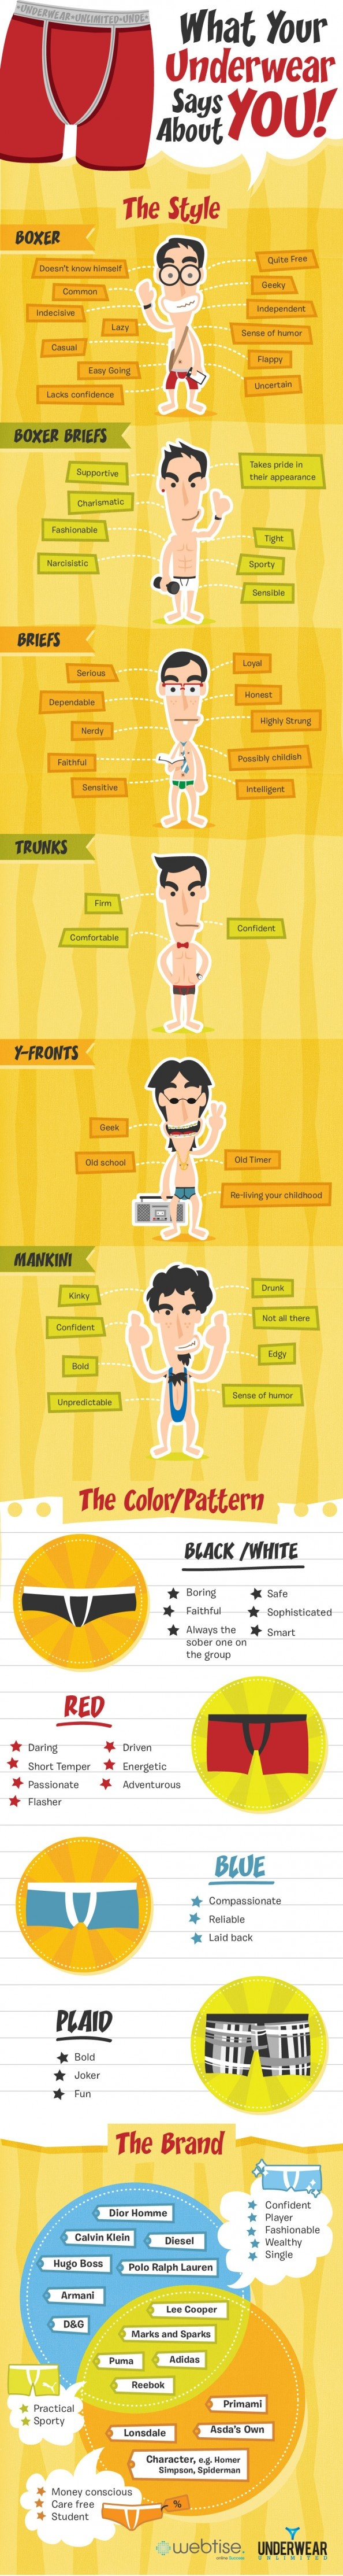 What Your Underwear Says About You! Infographic